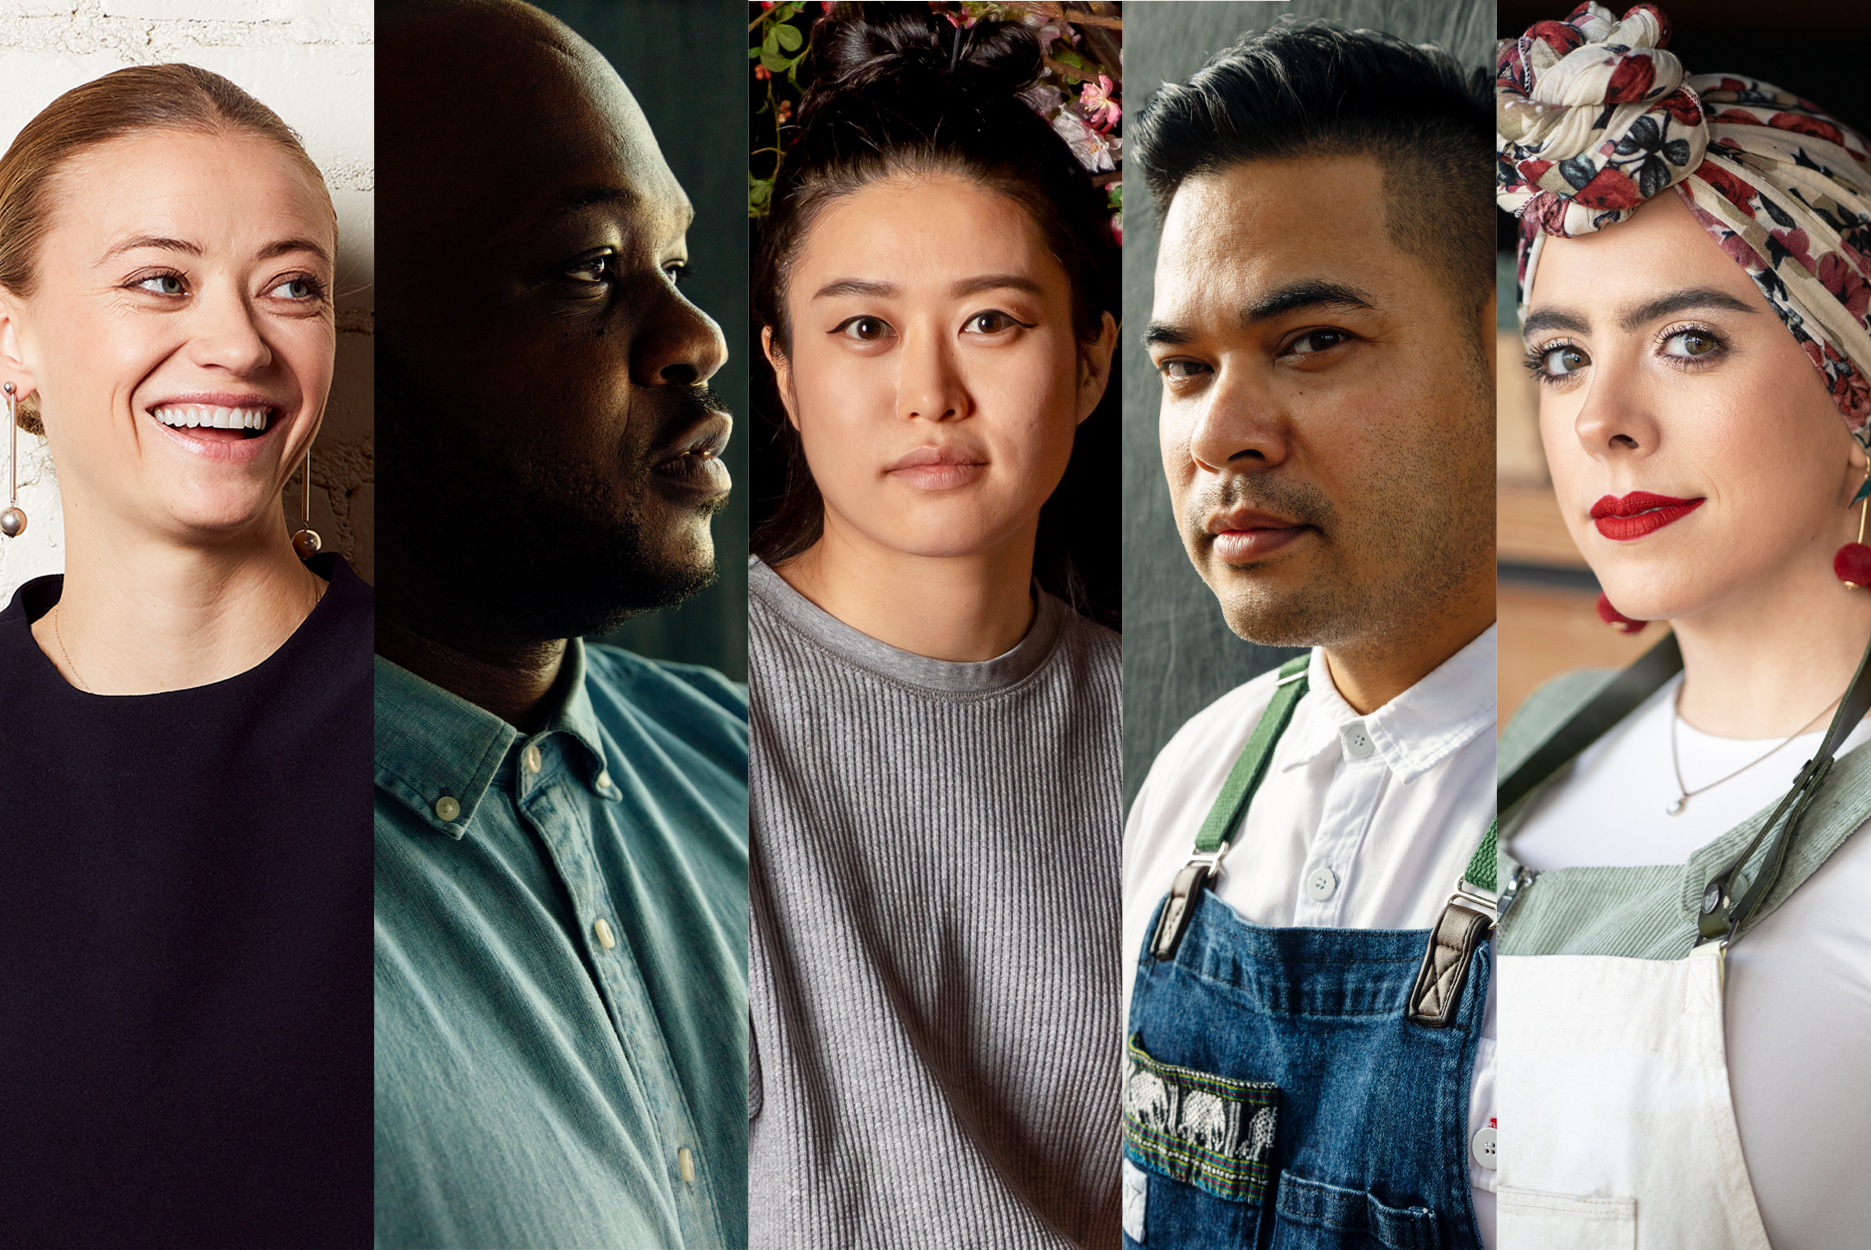 Best New Chefs 2020 | The Future of Restaurants